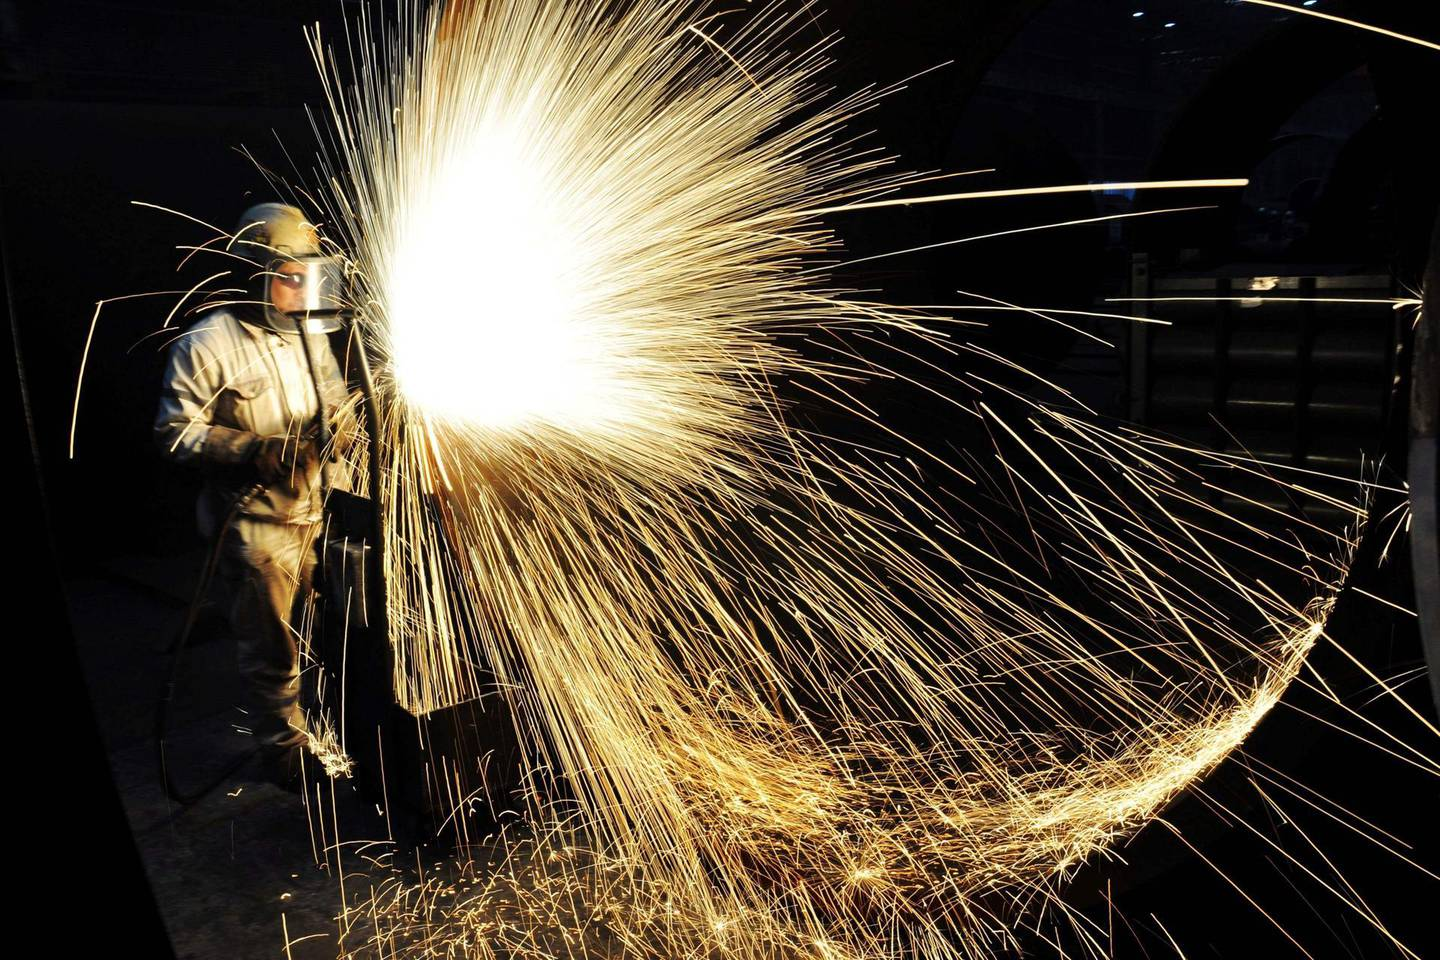 (FILES) This file picture taken on January 18, 2018 shows a Chinese worker cutting steel in Qingdao in China's eastern Shandong province. Despite fierce opposition from inside the White House, US President Donald Trump on March 1, 2018 announced punishing steel and aluminum tariffs, teeing up a possible trade war with major producers as well as China. / AFP PHOTO / -